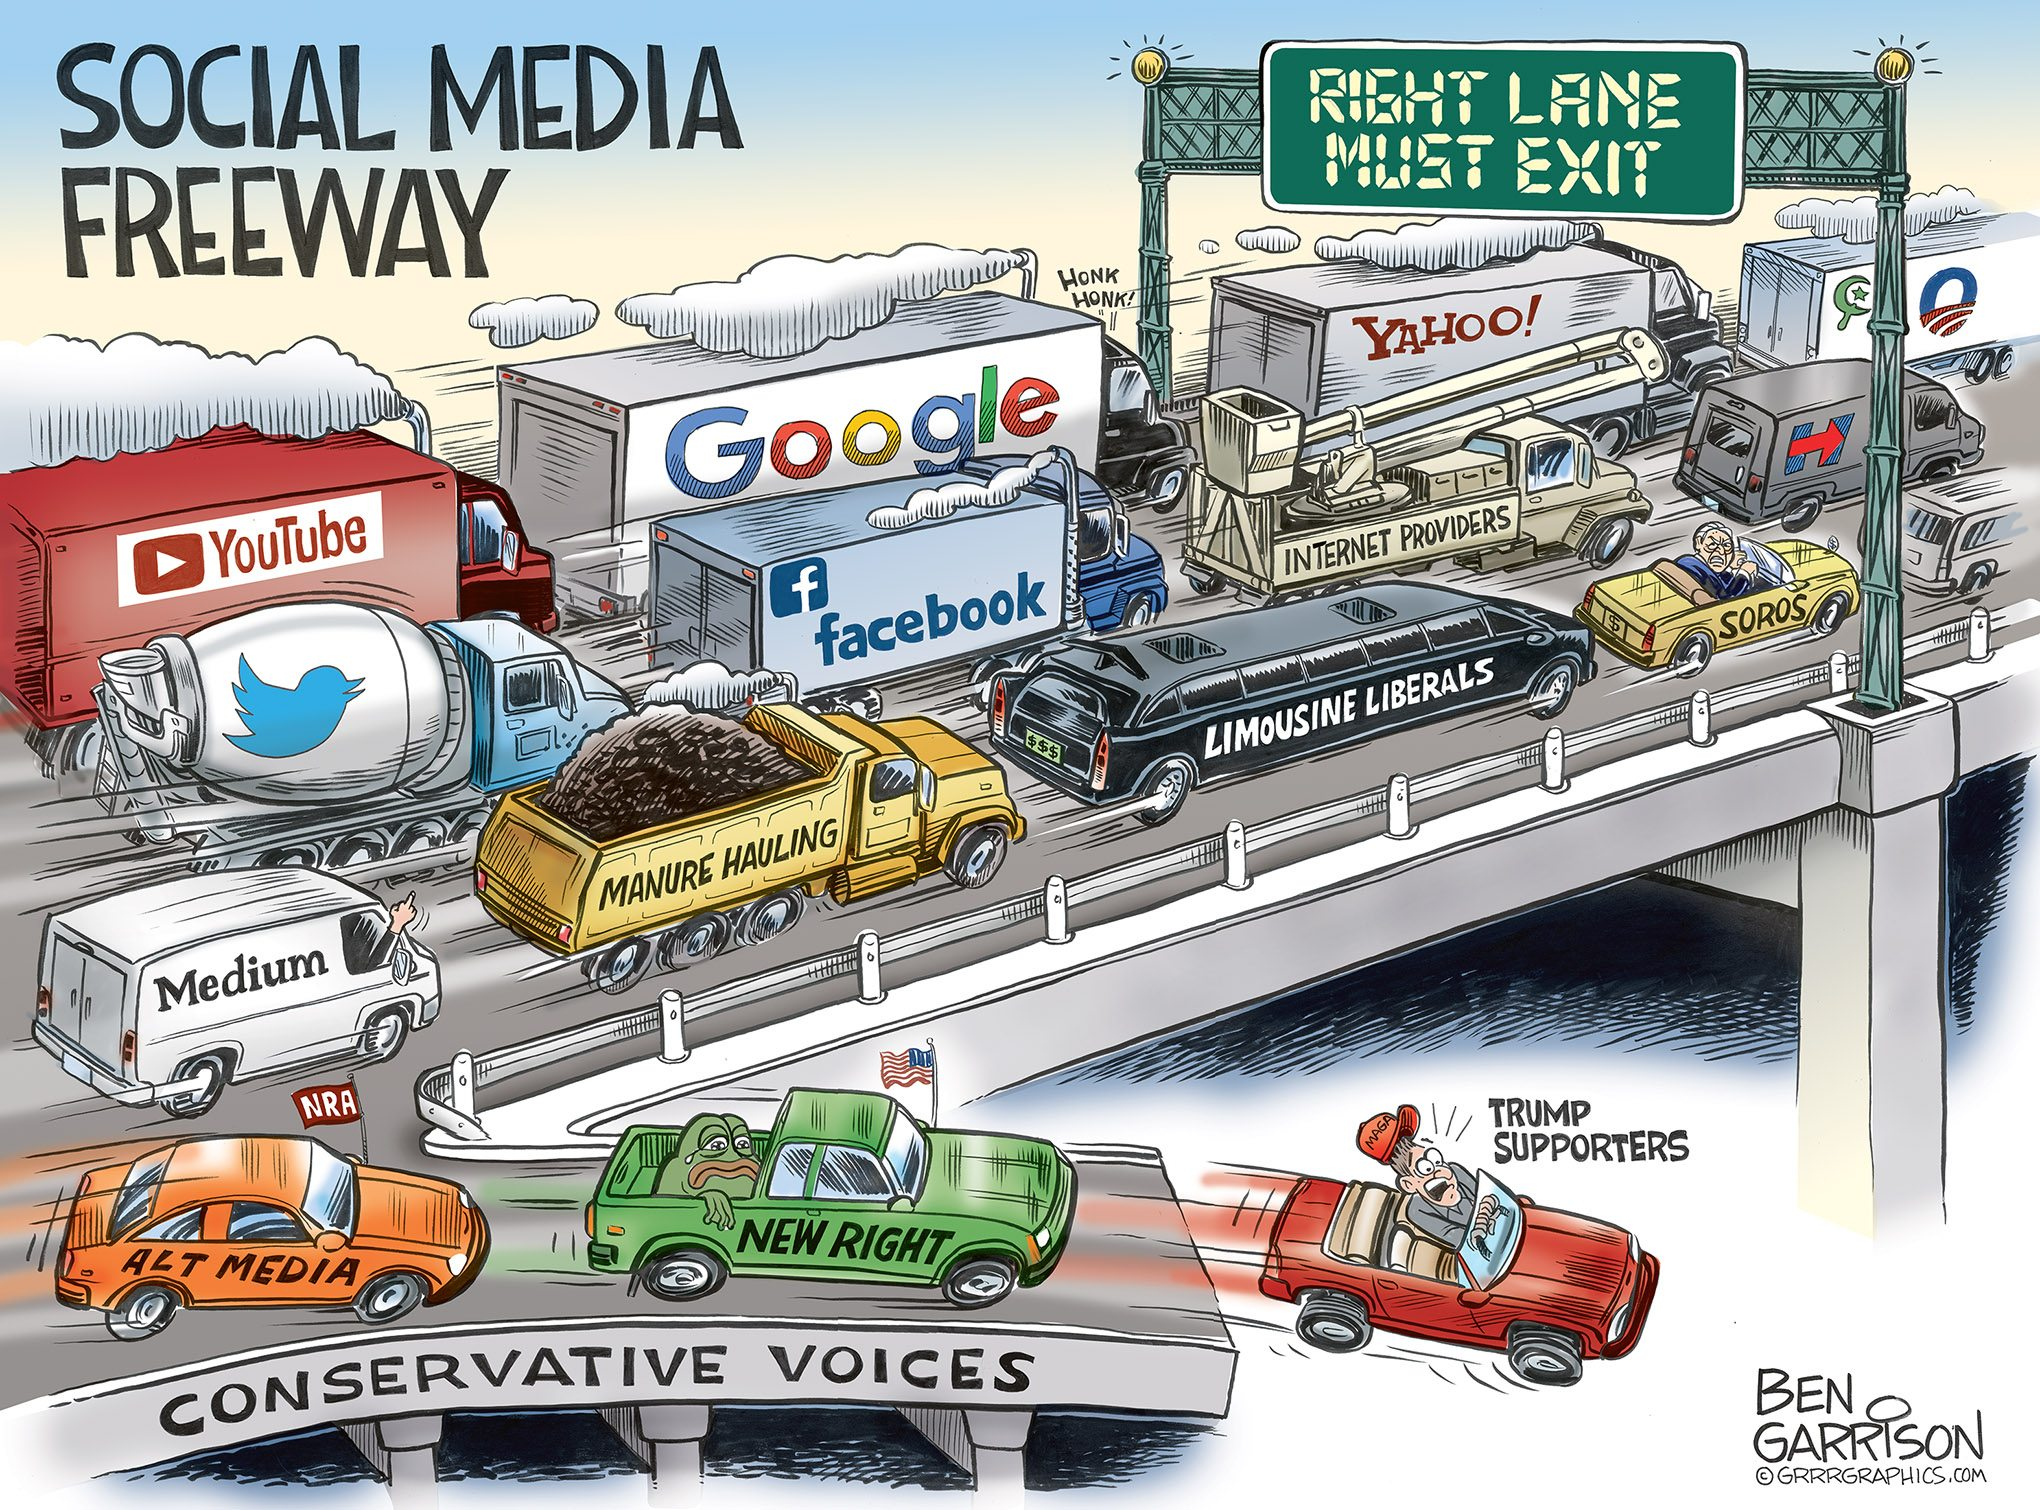 Image result for ben garrison social media freeay